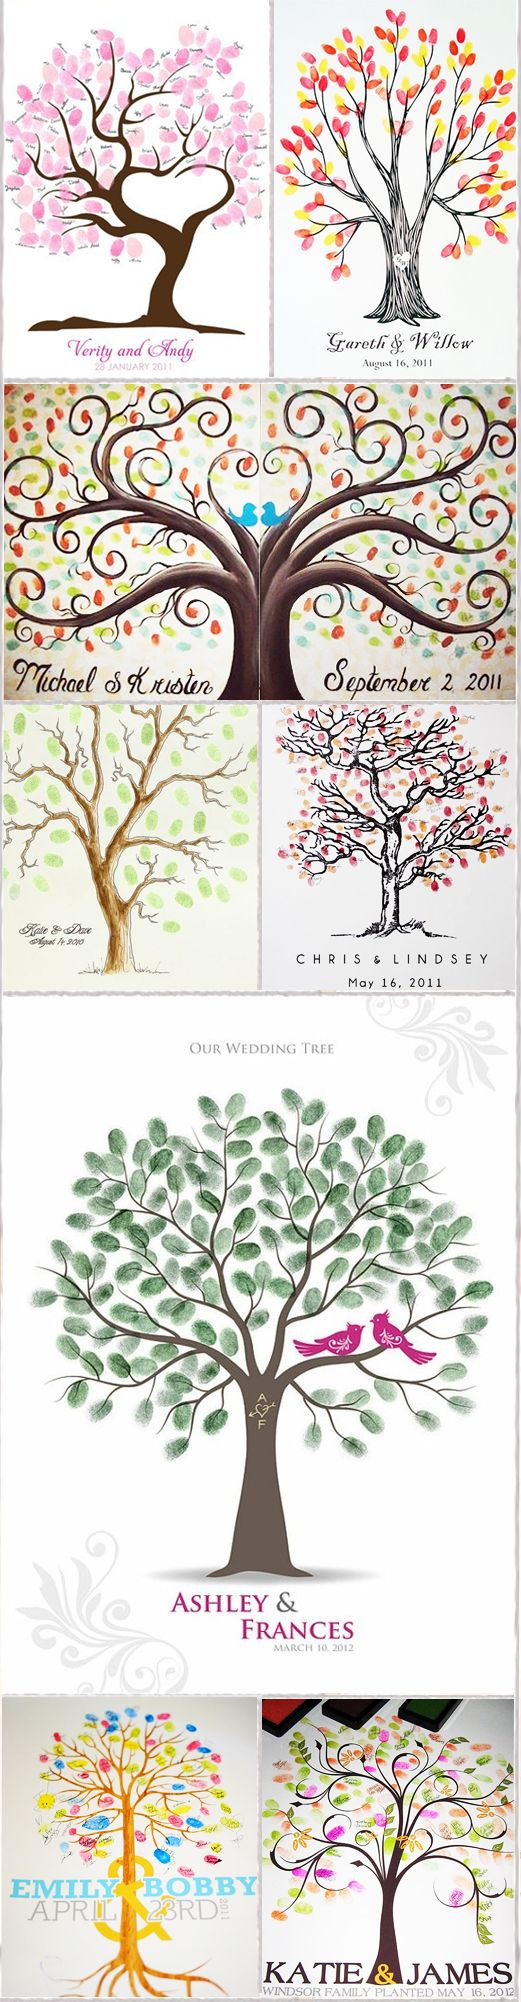 Wedding Tree~The leaves are made of fingerprints from each guest at the wedding!  I saw one of these framed & matted after wedding and it was amazing